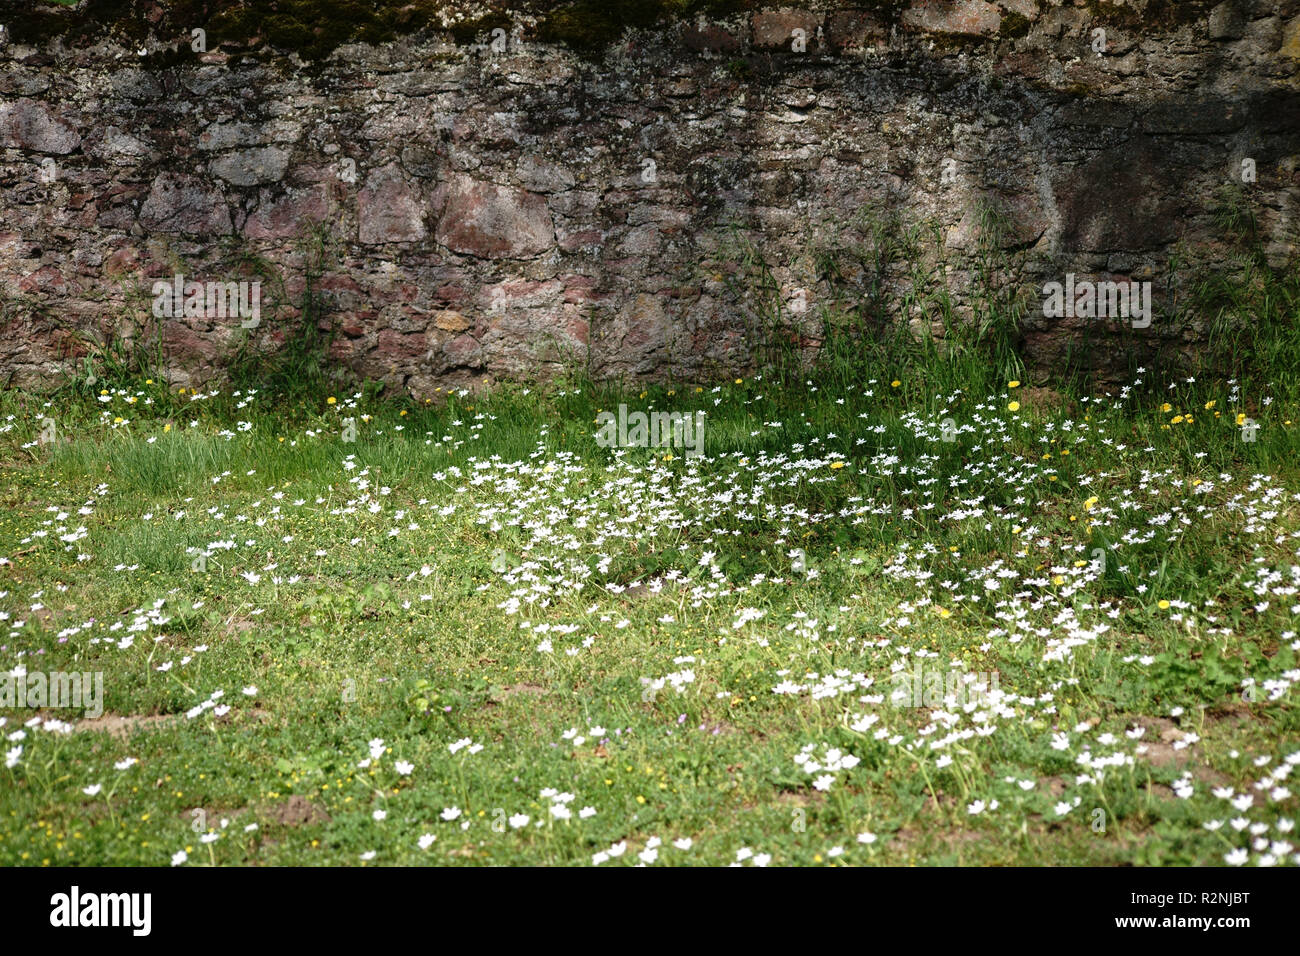 A rustic wall of staggered and broken stones on a meadow of dandelions and daisies, - Stock Image